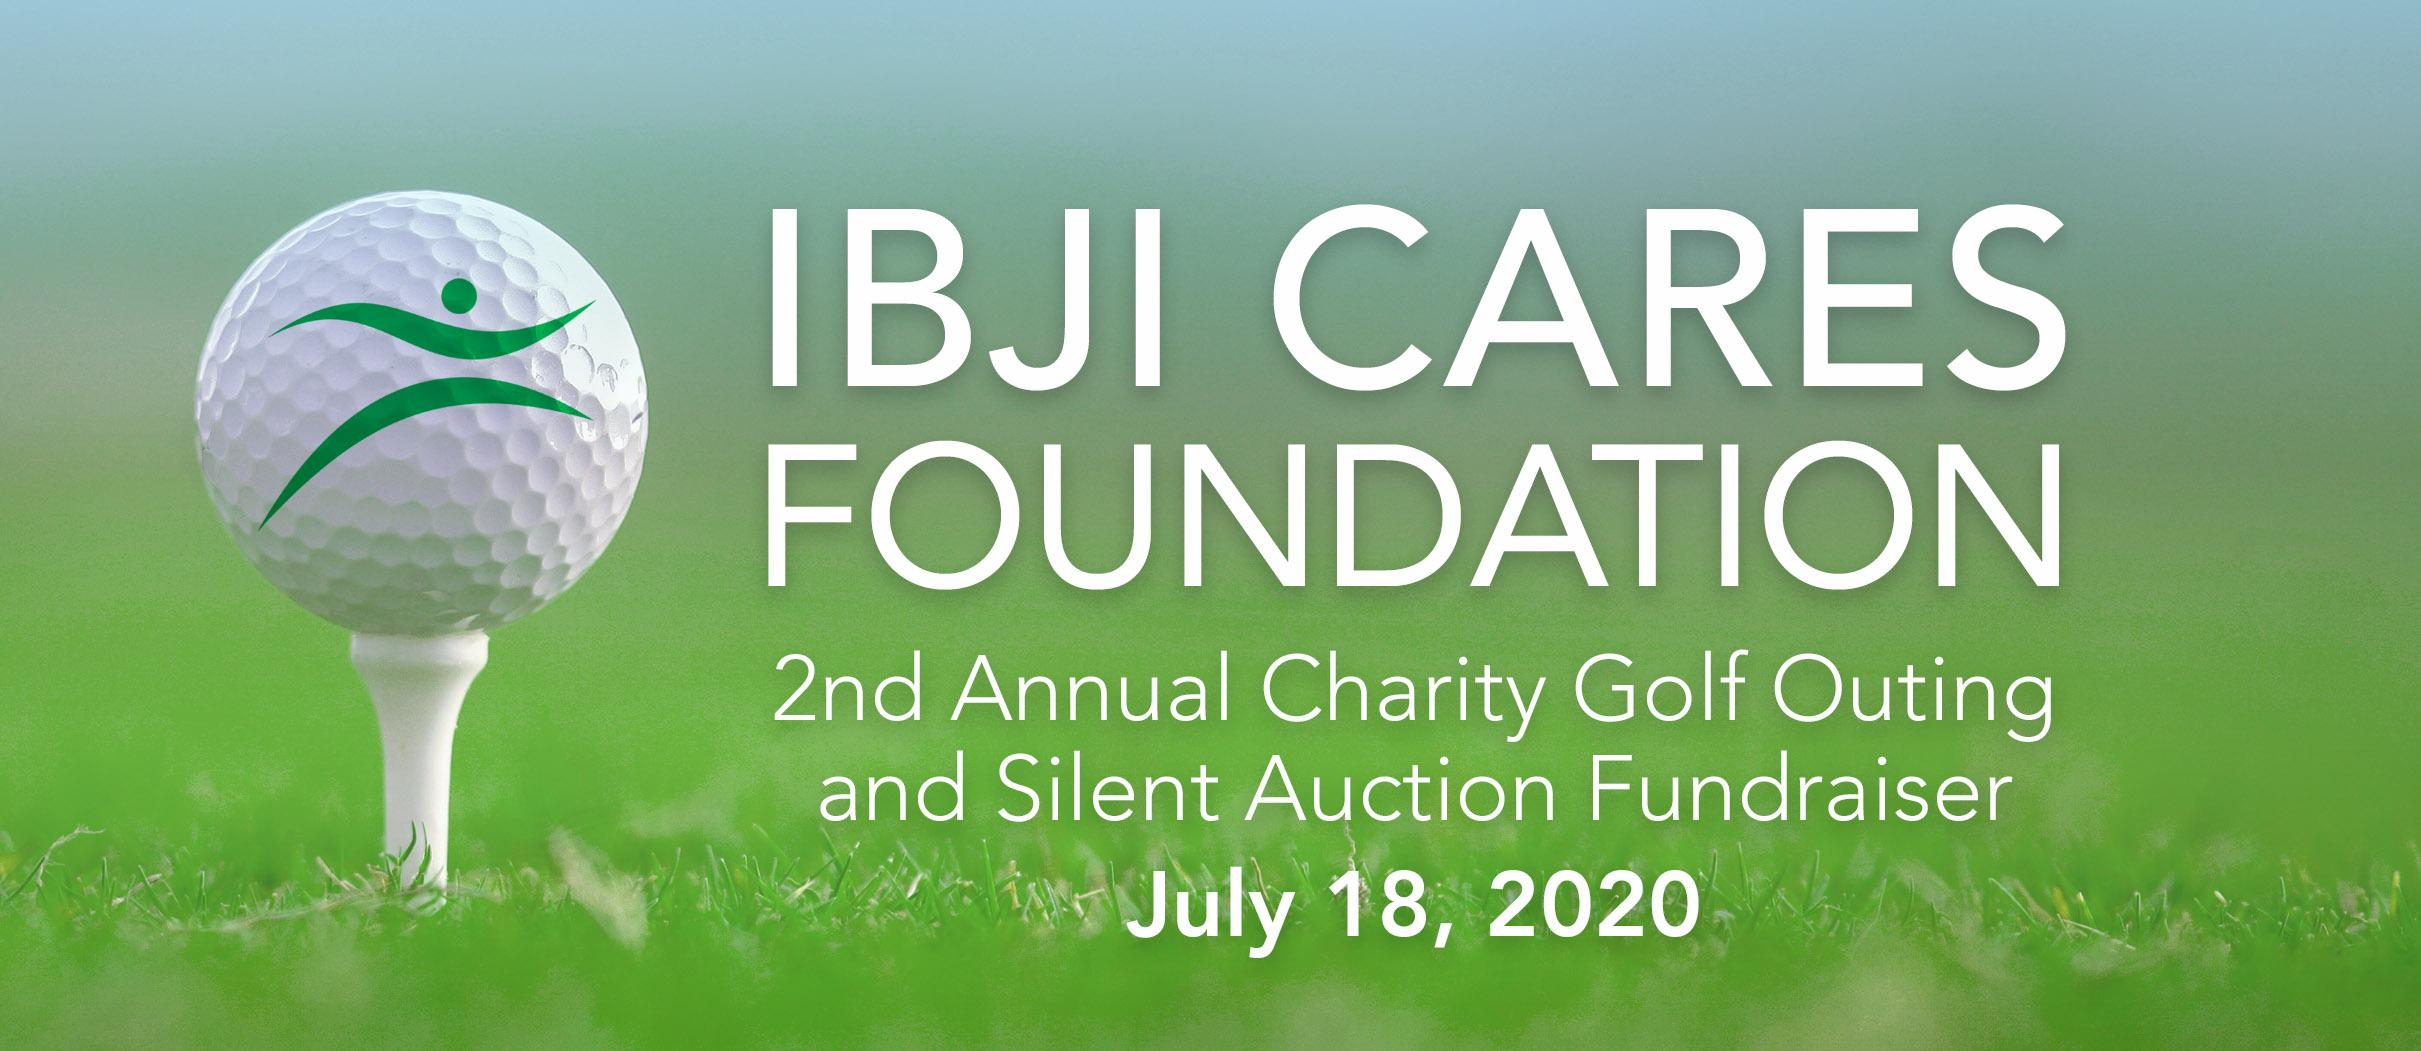 2020 IBJI CARES OPEN Golf Outing & Silent Auction Fundraiser